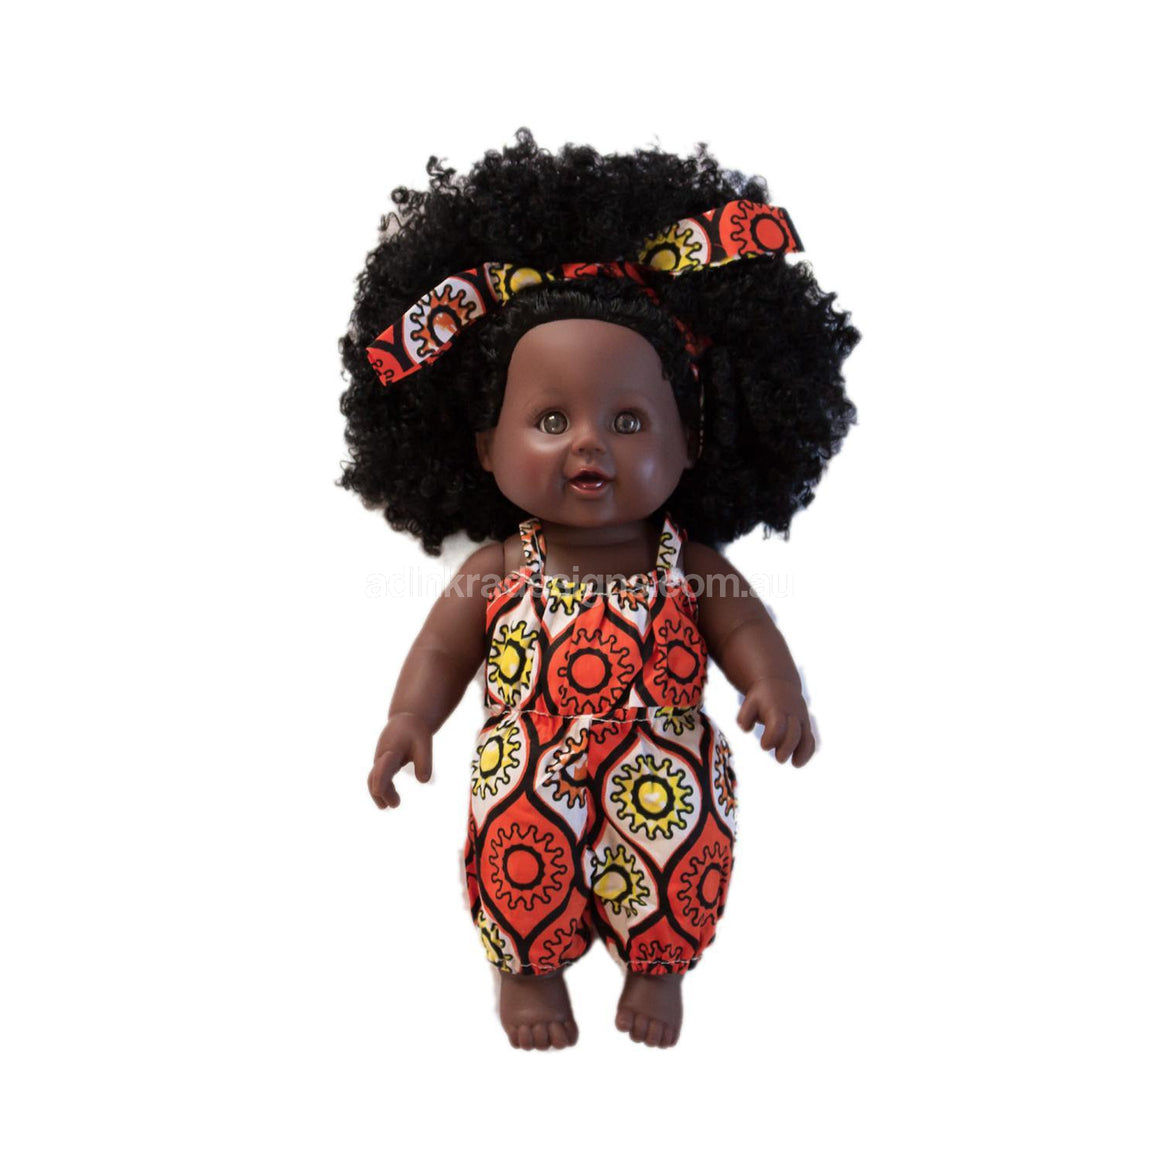 African dolls- Fair trade and for Charity - The Adinkra Project